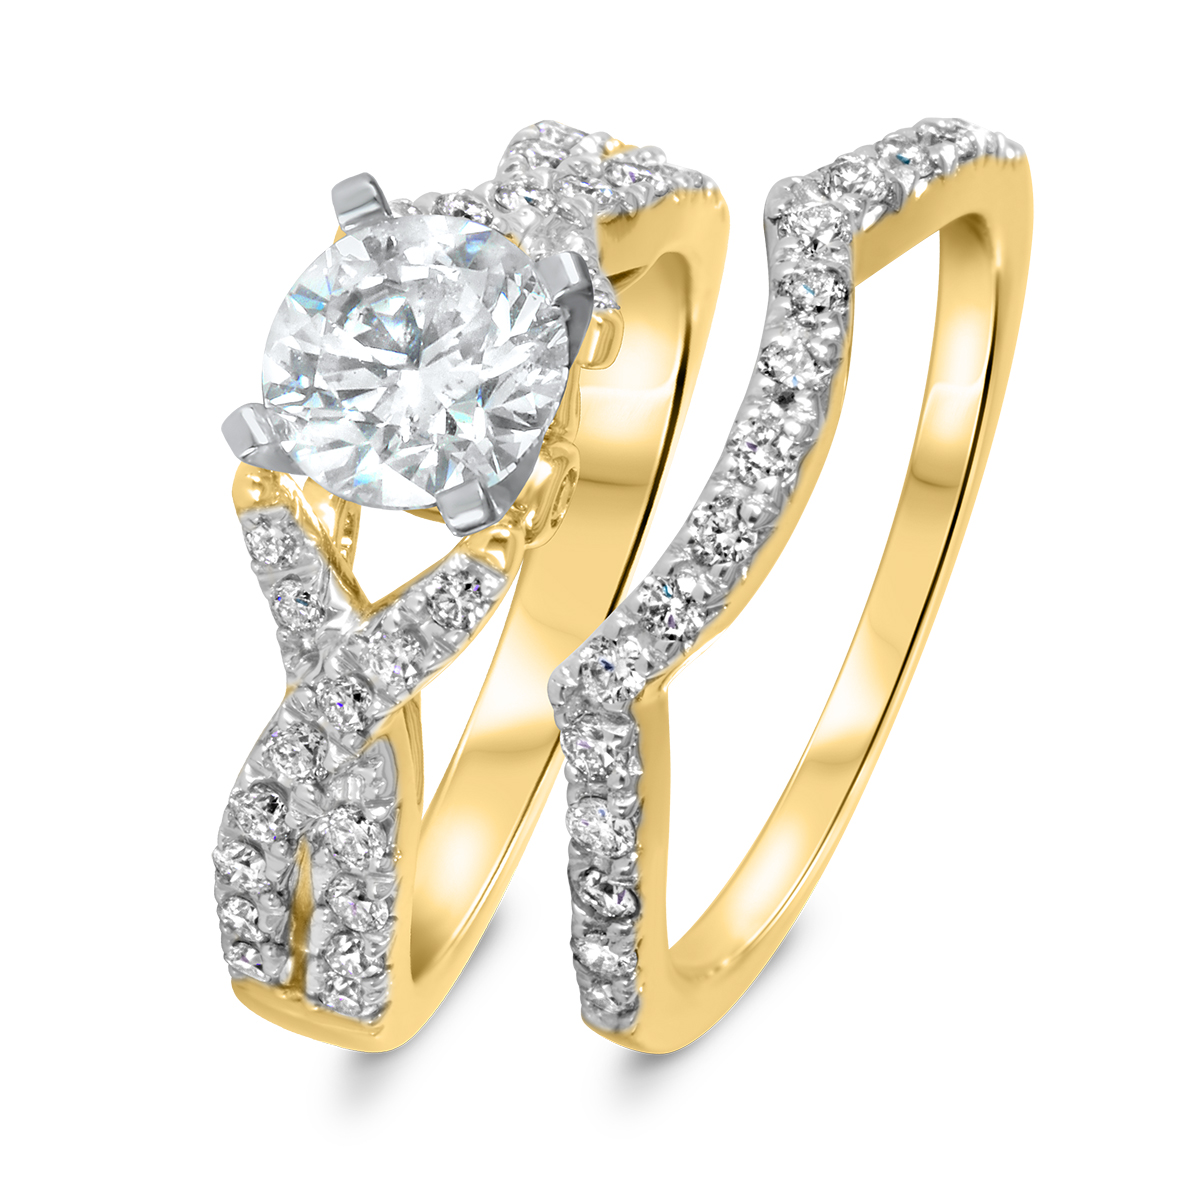 1 3 4 CT T W Diamond Women s Bridal Wedding Ring Set 14K Yellow Gold